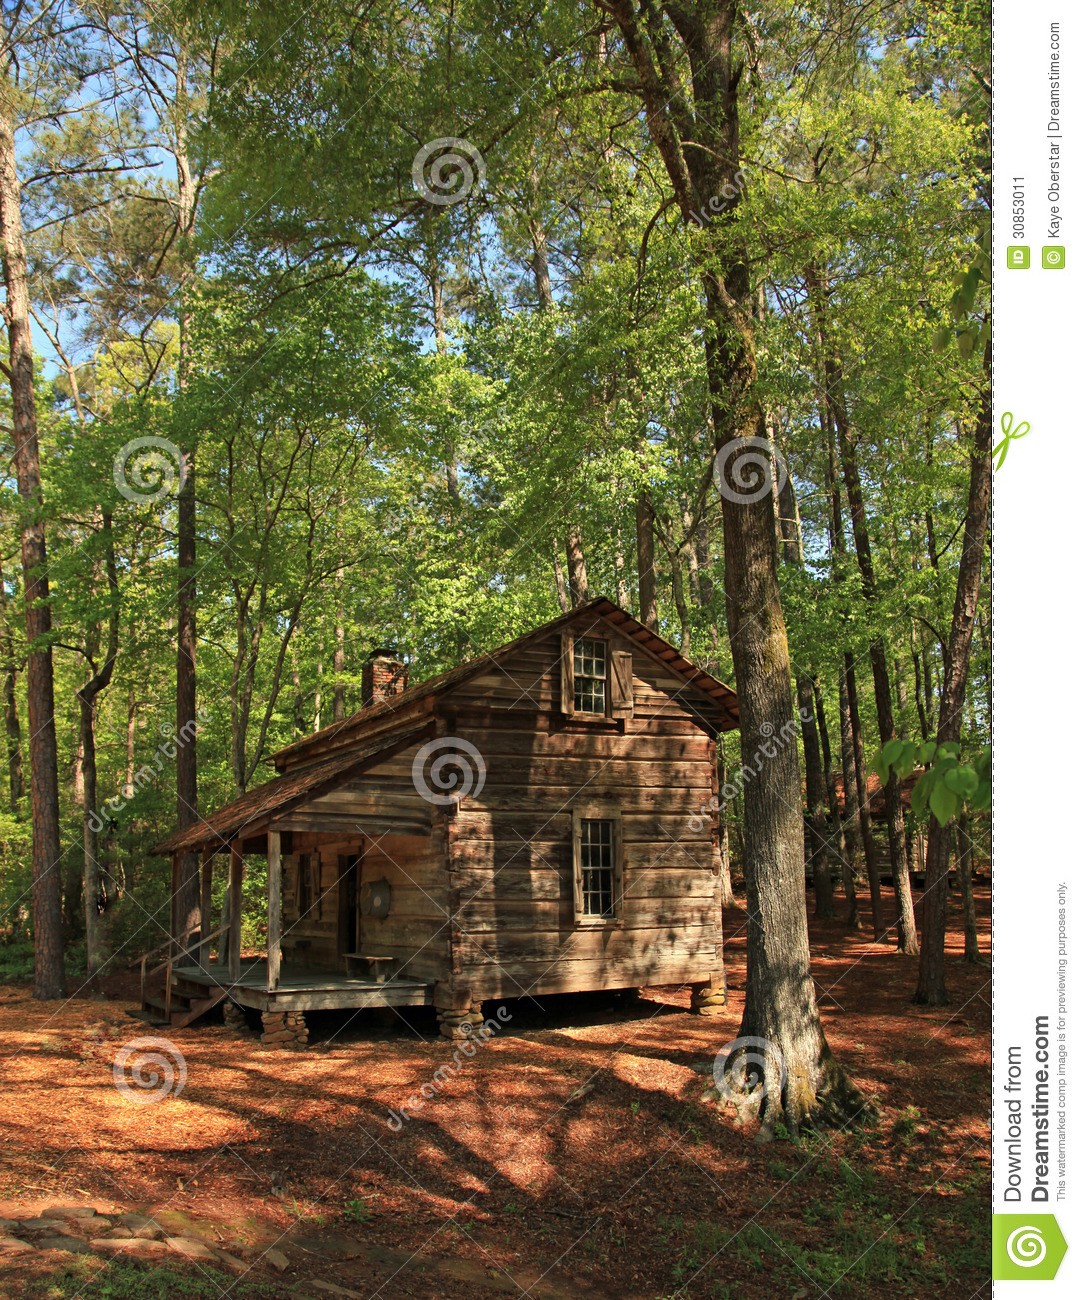 Old Log Cabin Pioneer Living Stock Image - Image of gardens ...